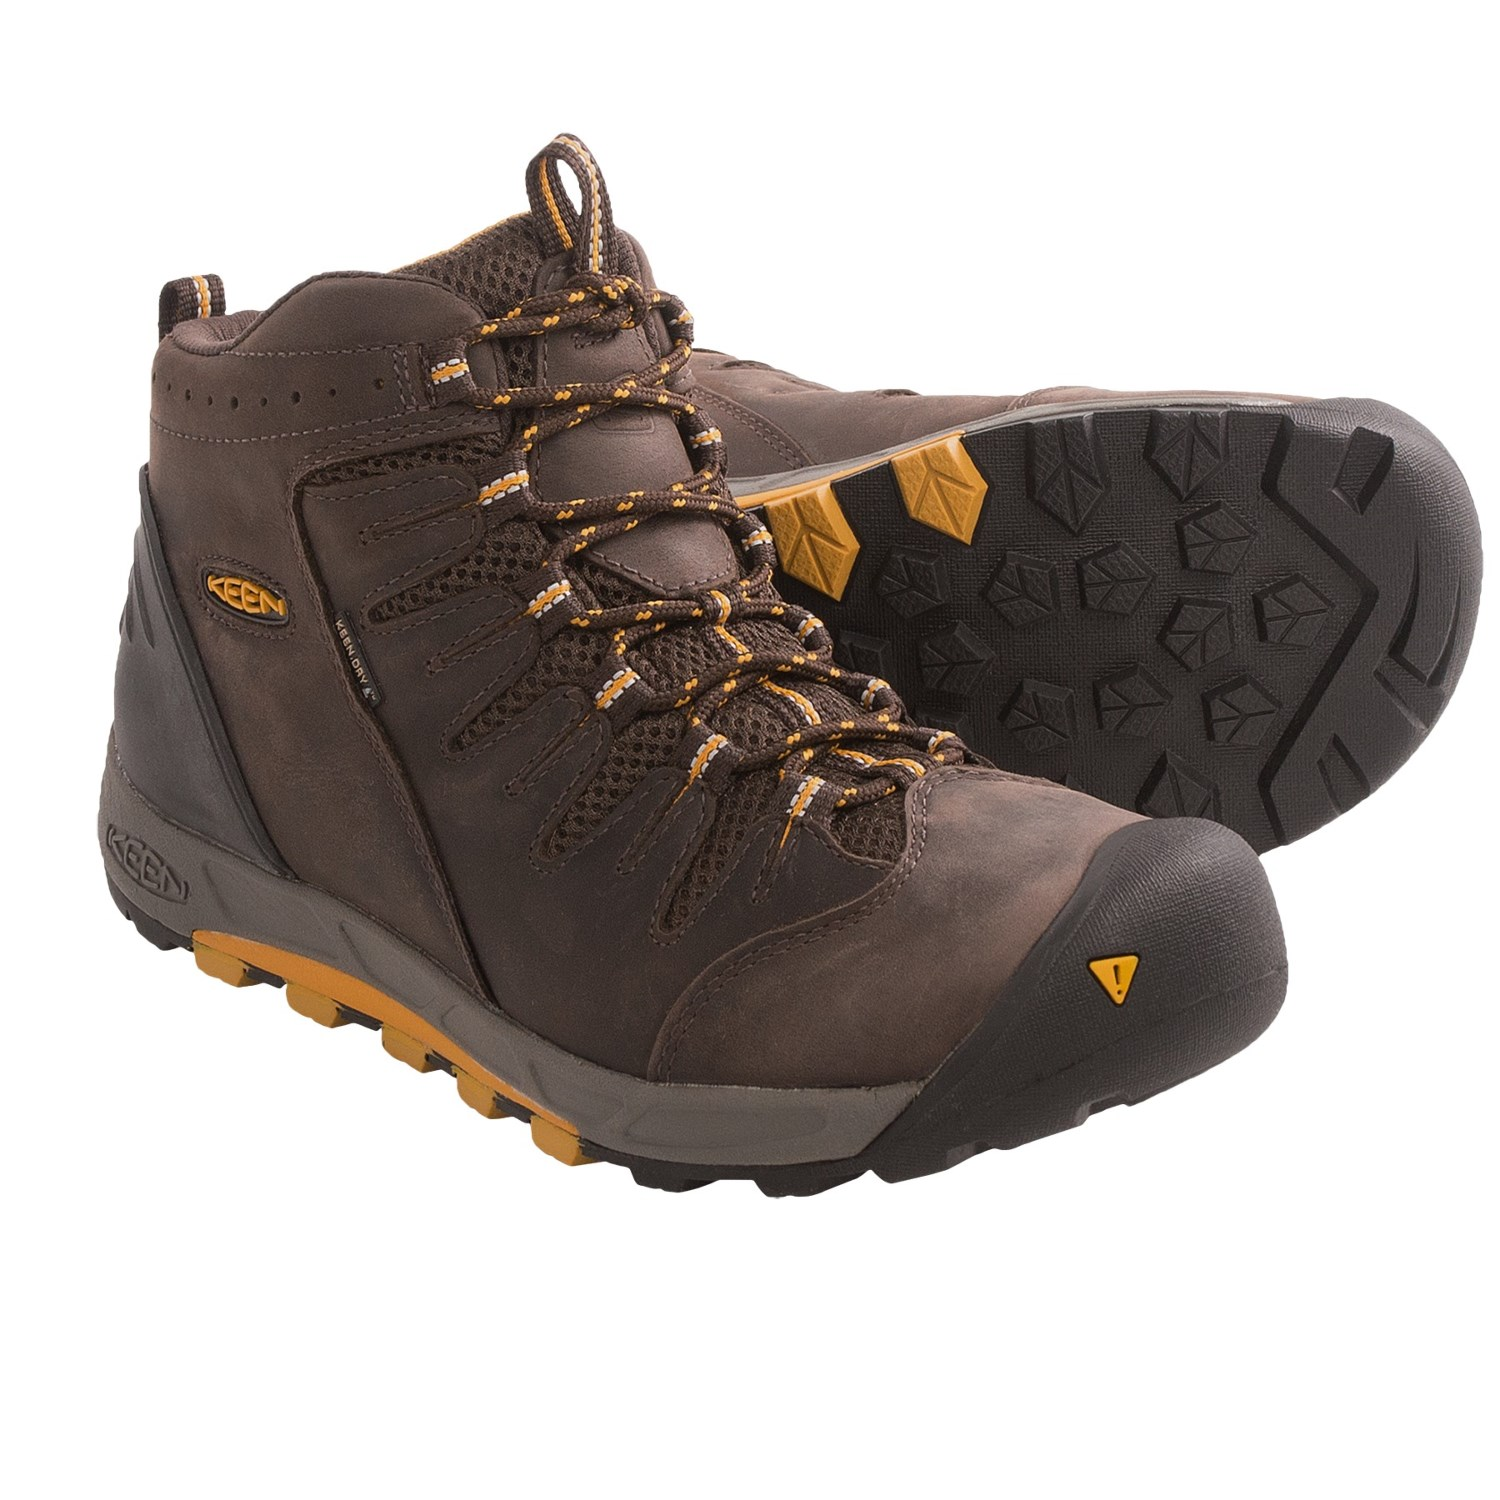 keen bryce mid hiking boots waterproof leather for